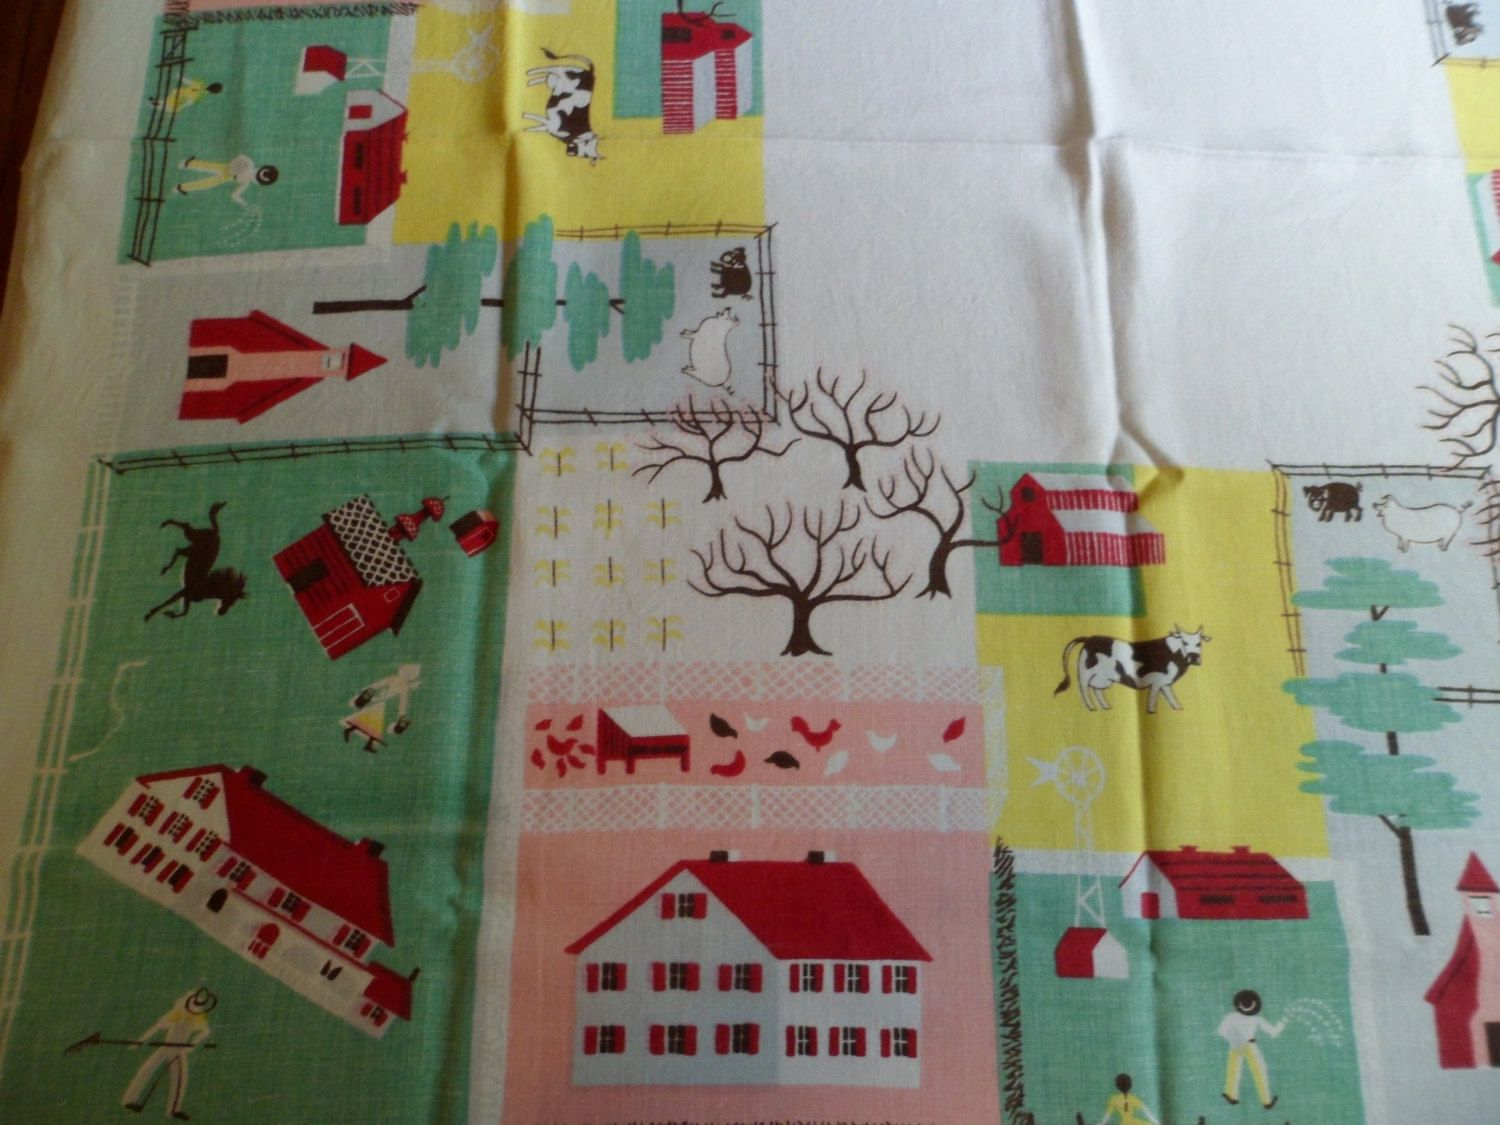 Arts and crafts table linens - Vintage Leacock Prints Tablecloth R F D Rural Country Farm Scenes